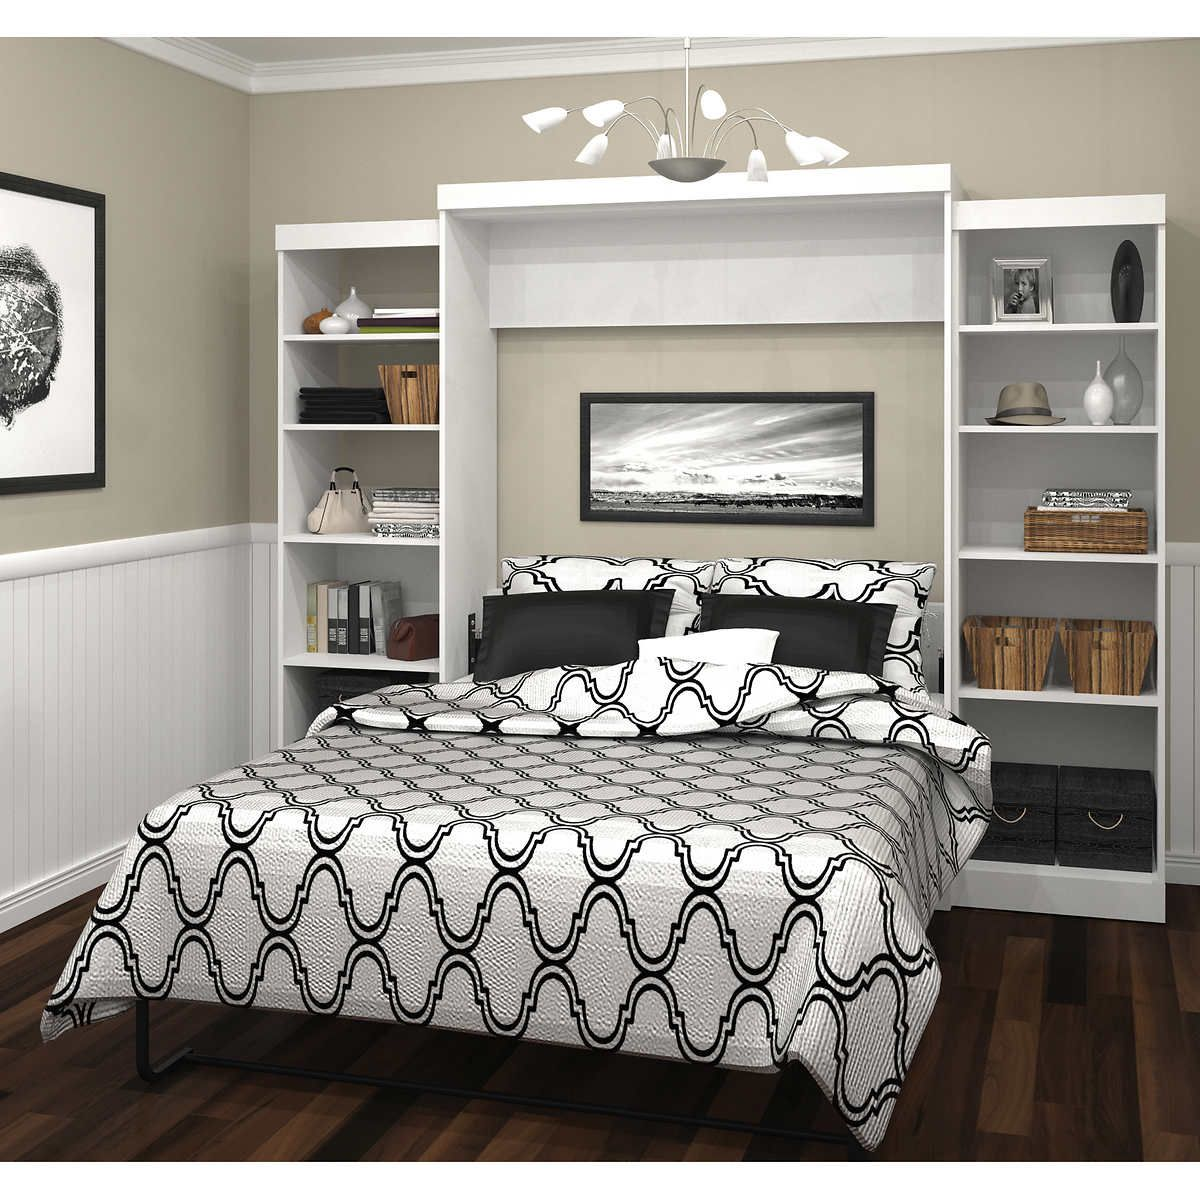 Boutique Queen Wall Bed With Two 25 Open Storage Units In White In 2020 Bed Wall Home Decor Furniture